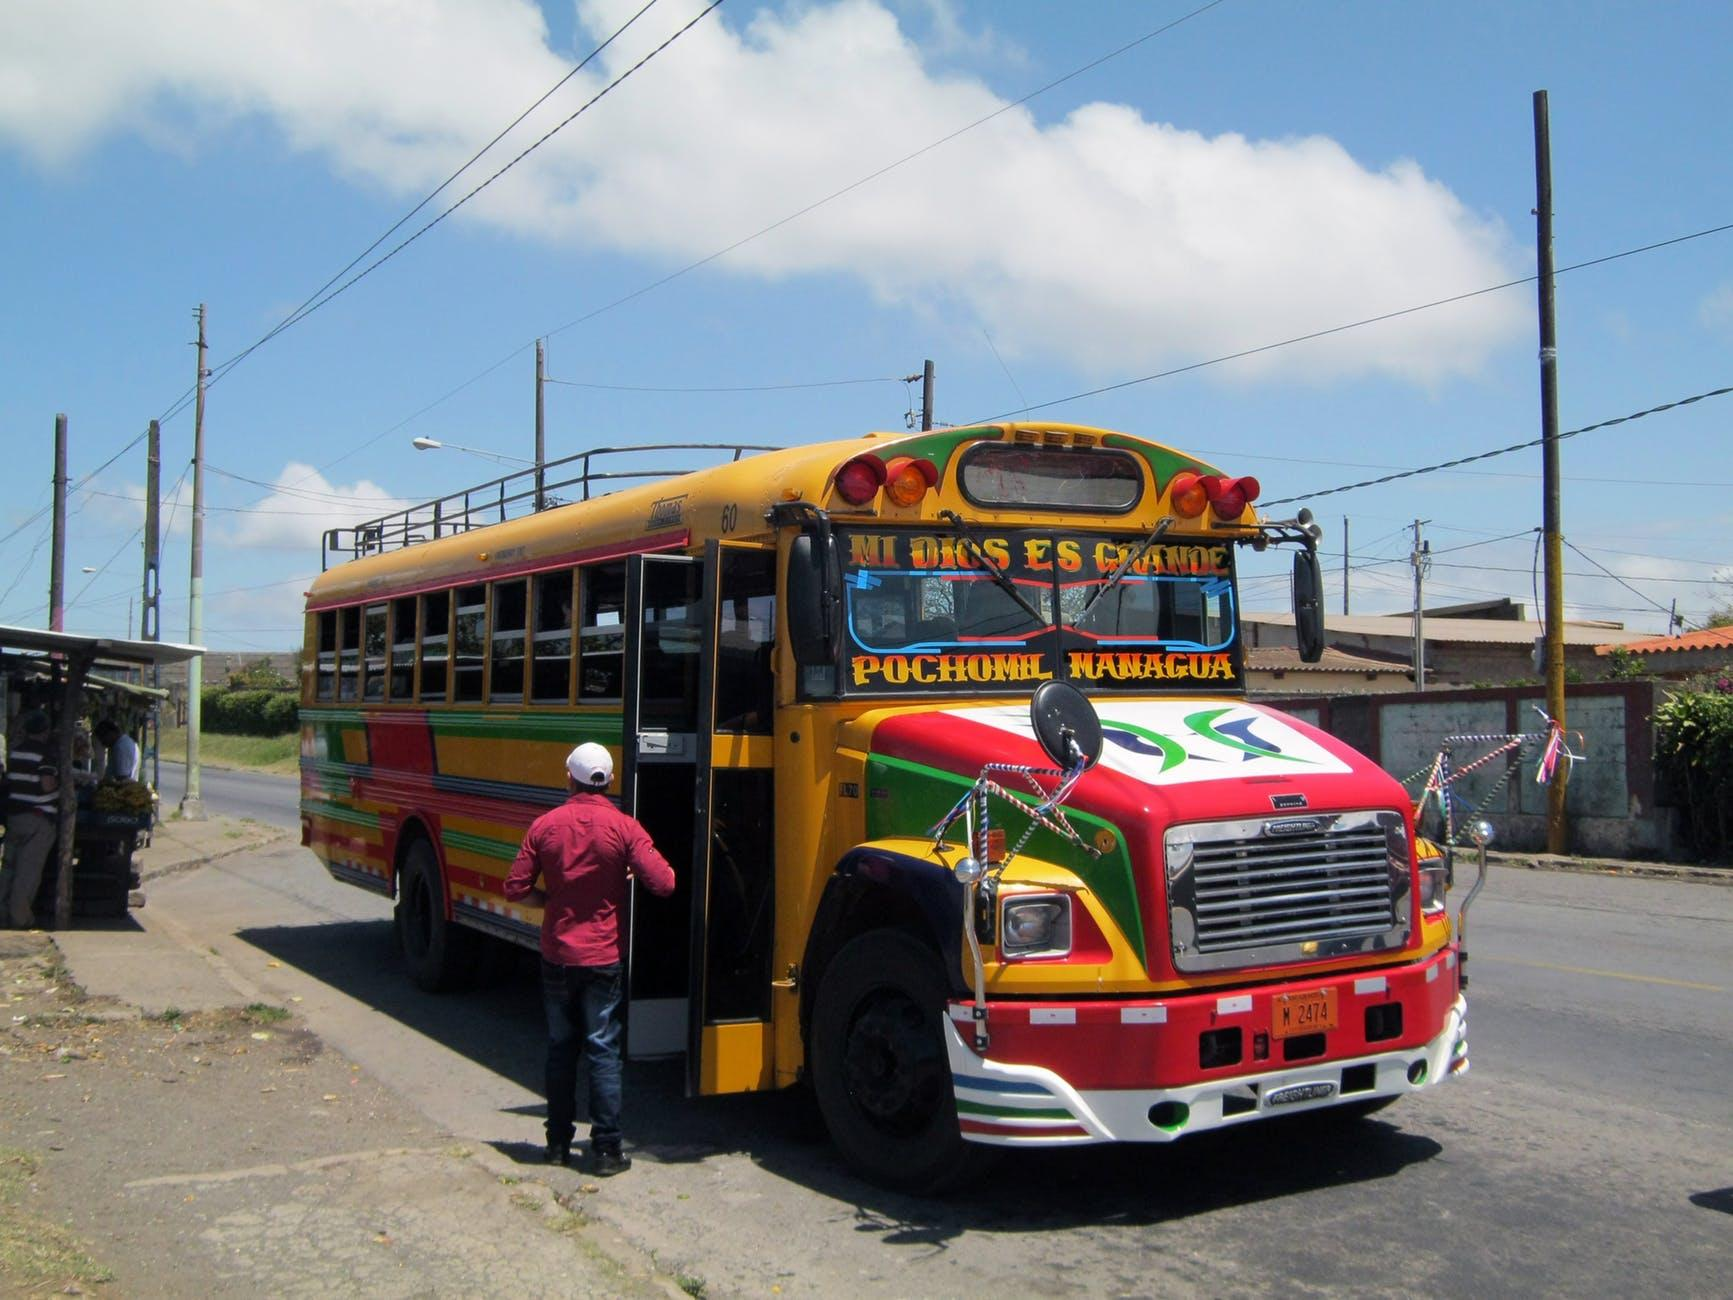 The classic chicken bus in Nicaragua